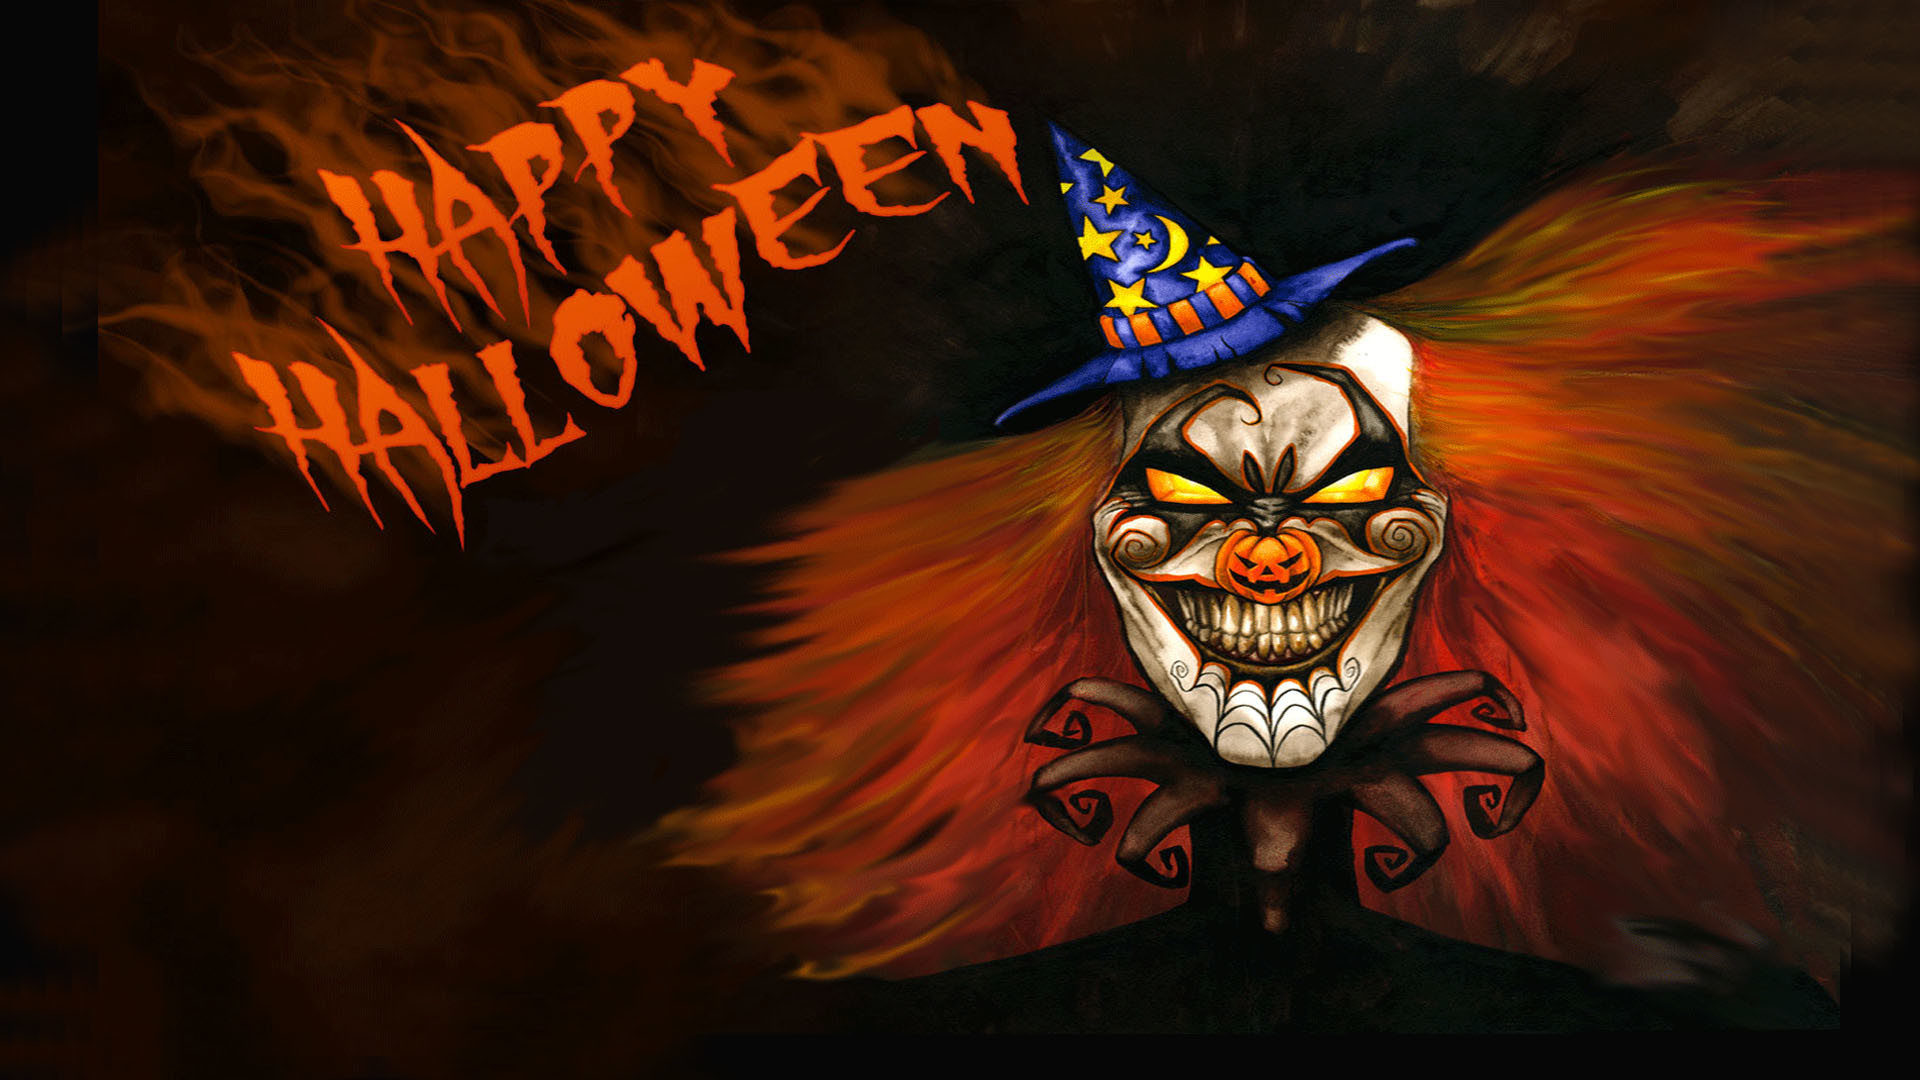 1920x1080 Halloween wallpapers HD free download.